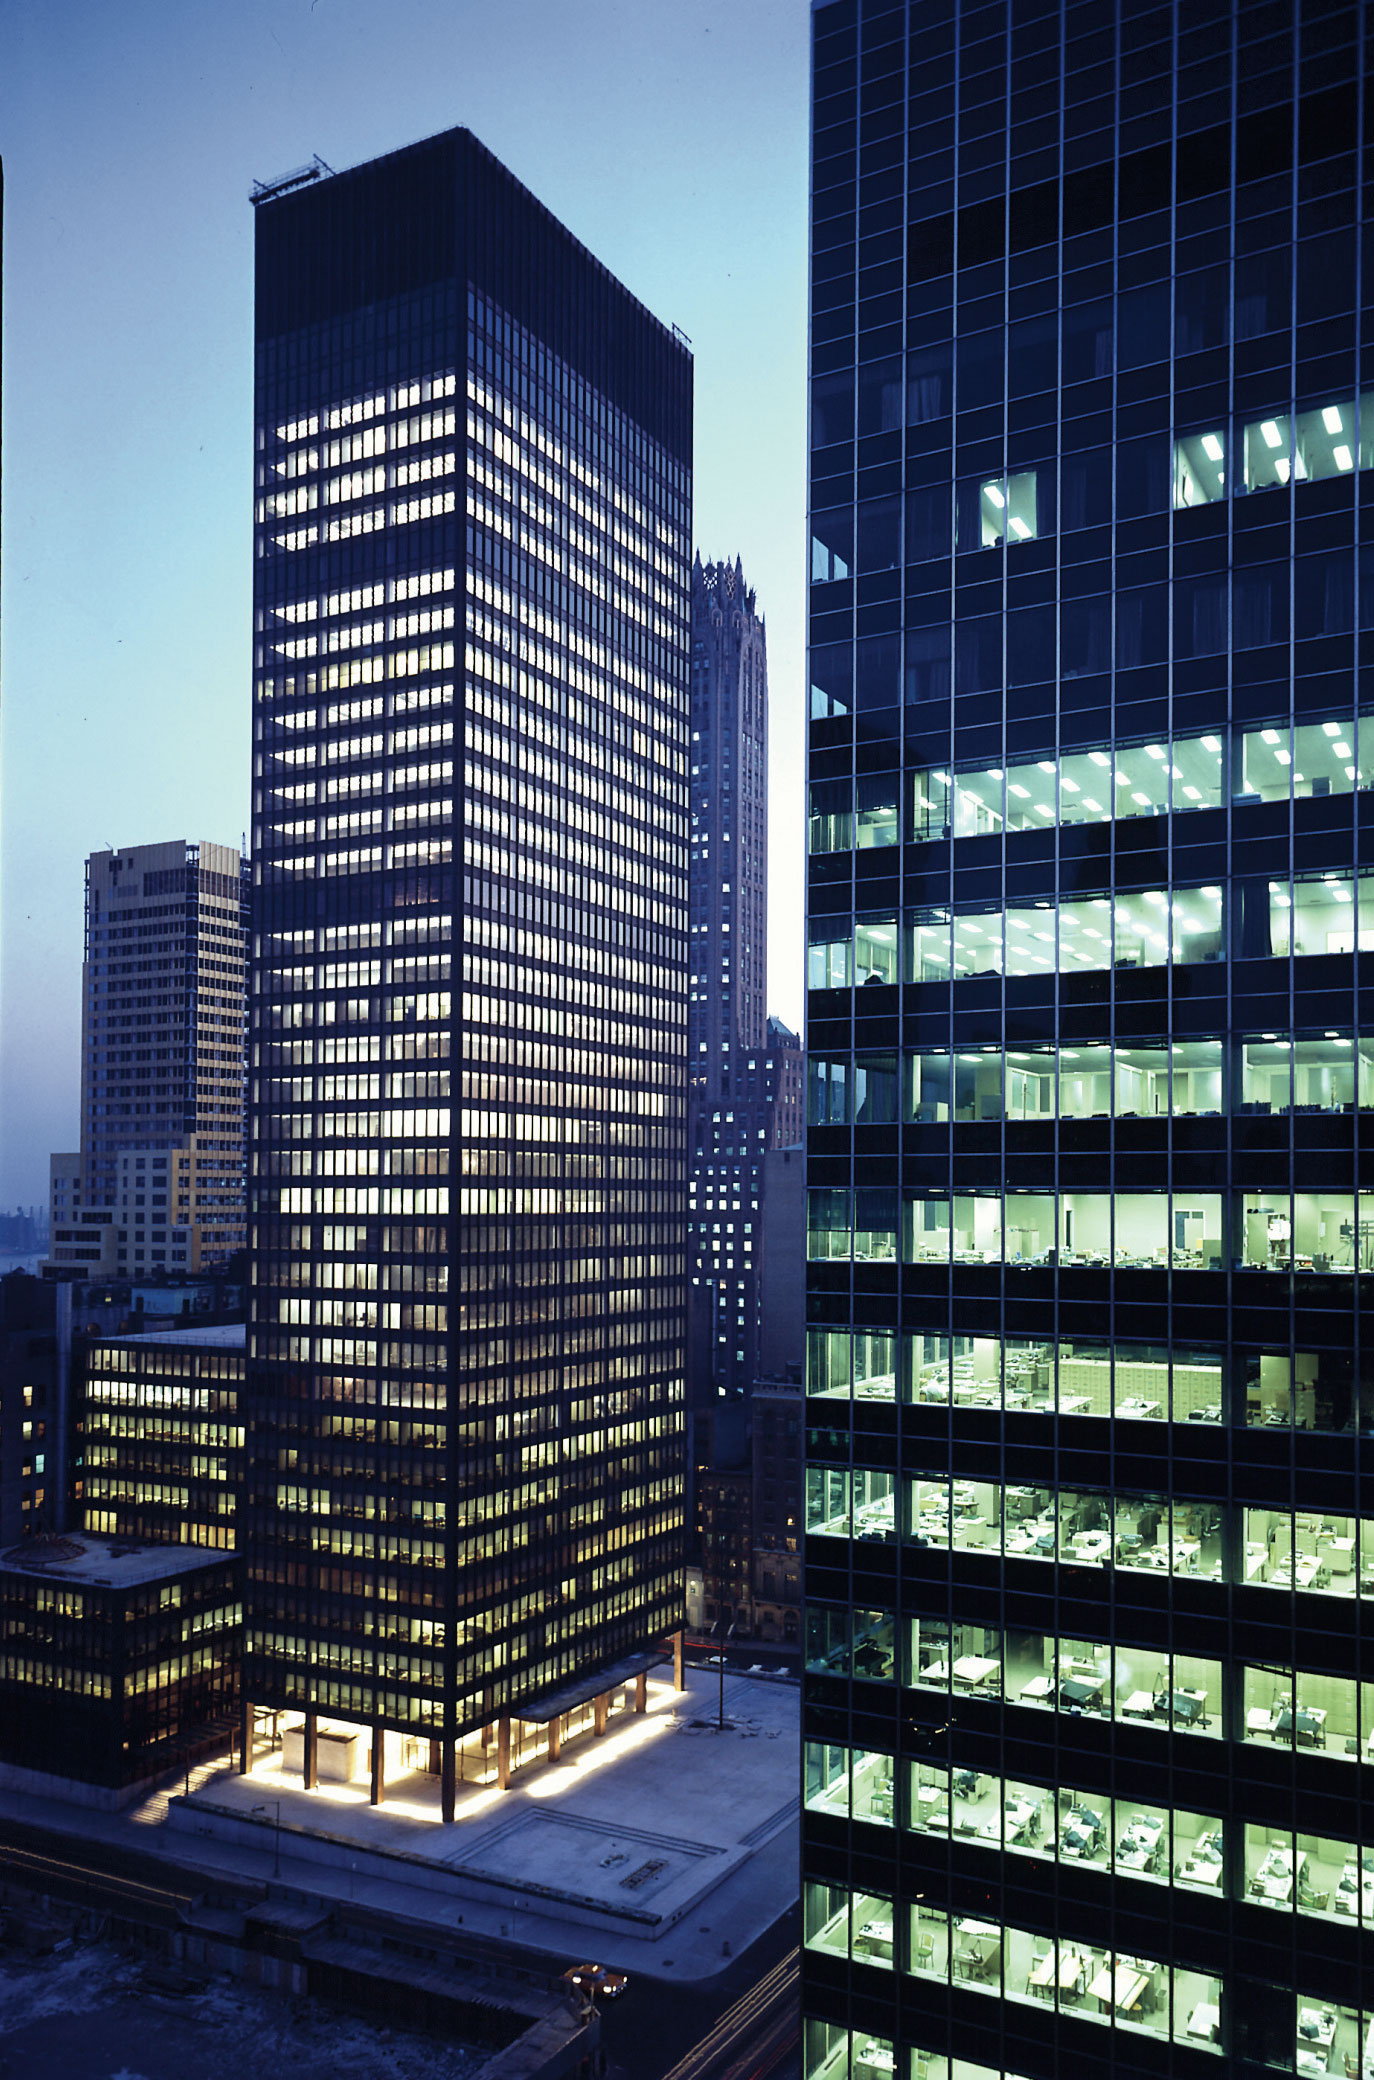 Philip Johnson and the making of the Seagram Building